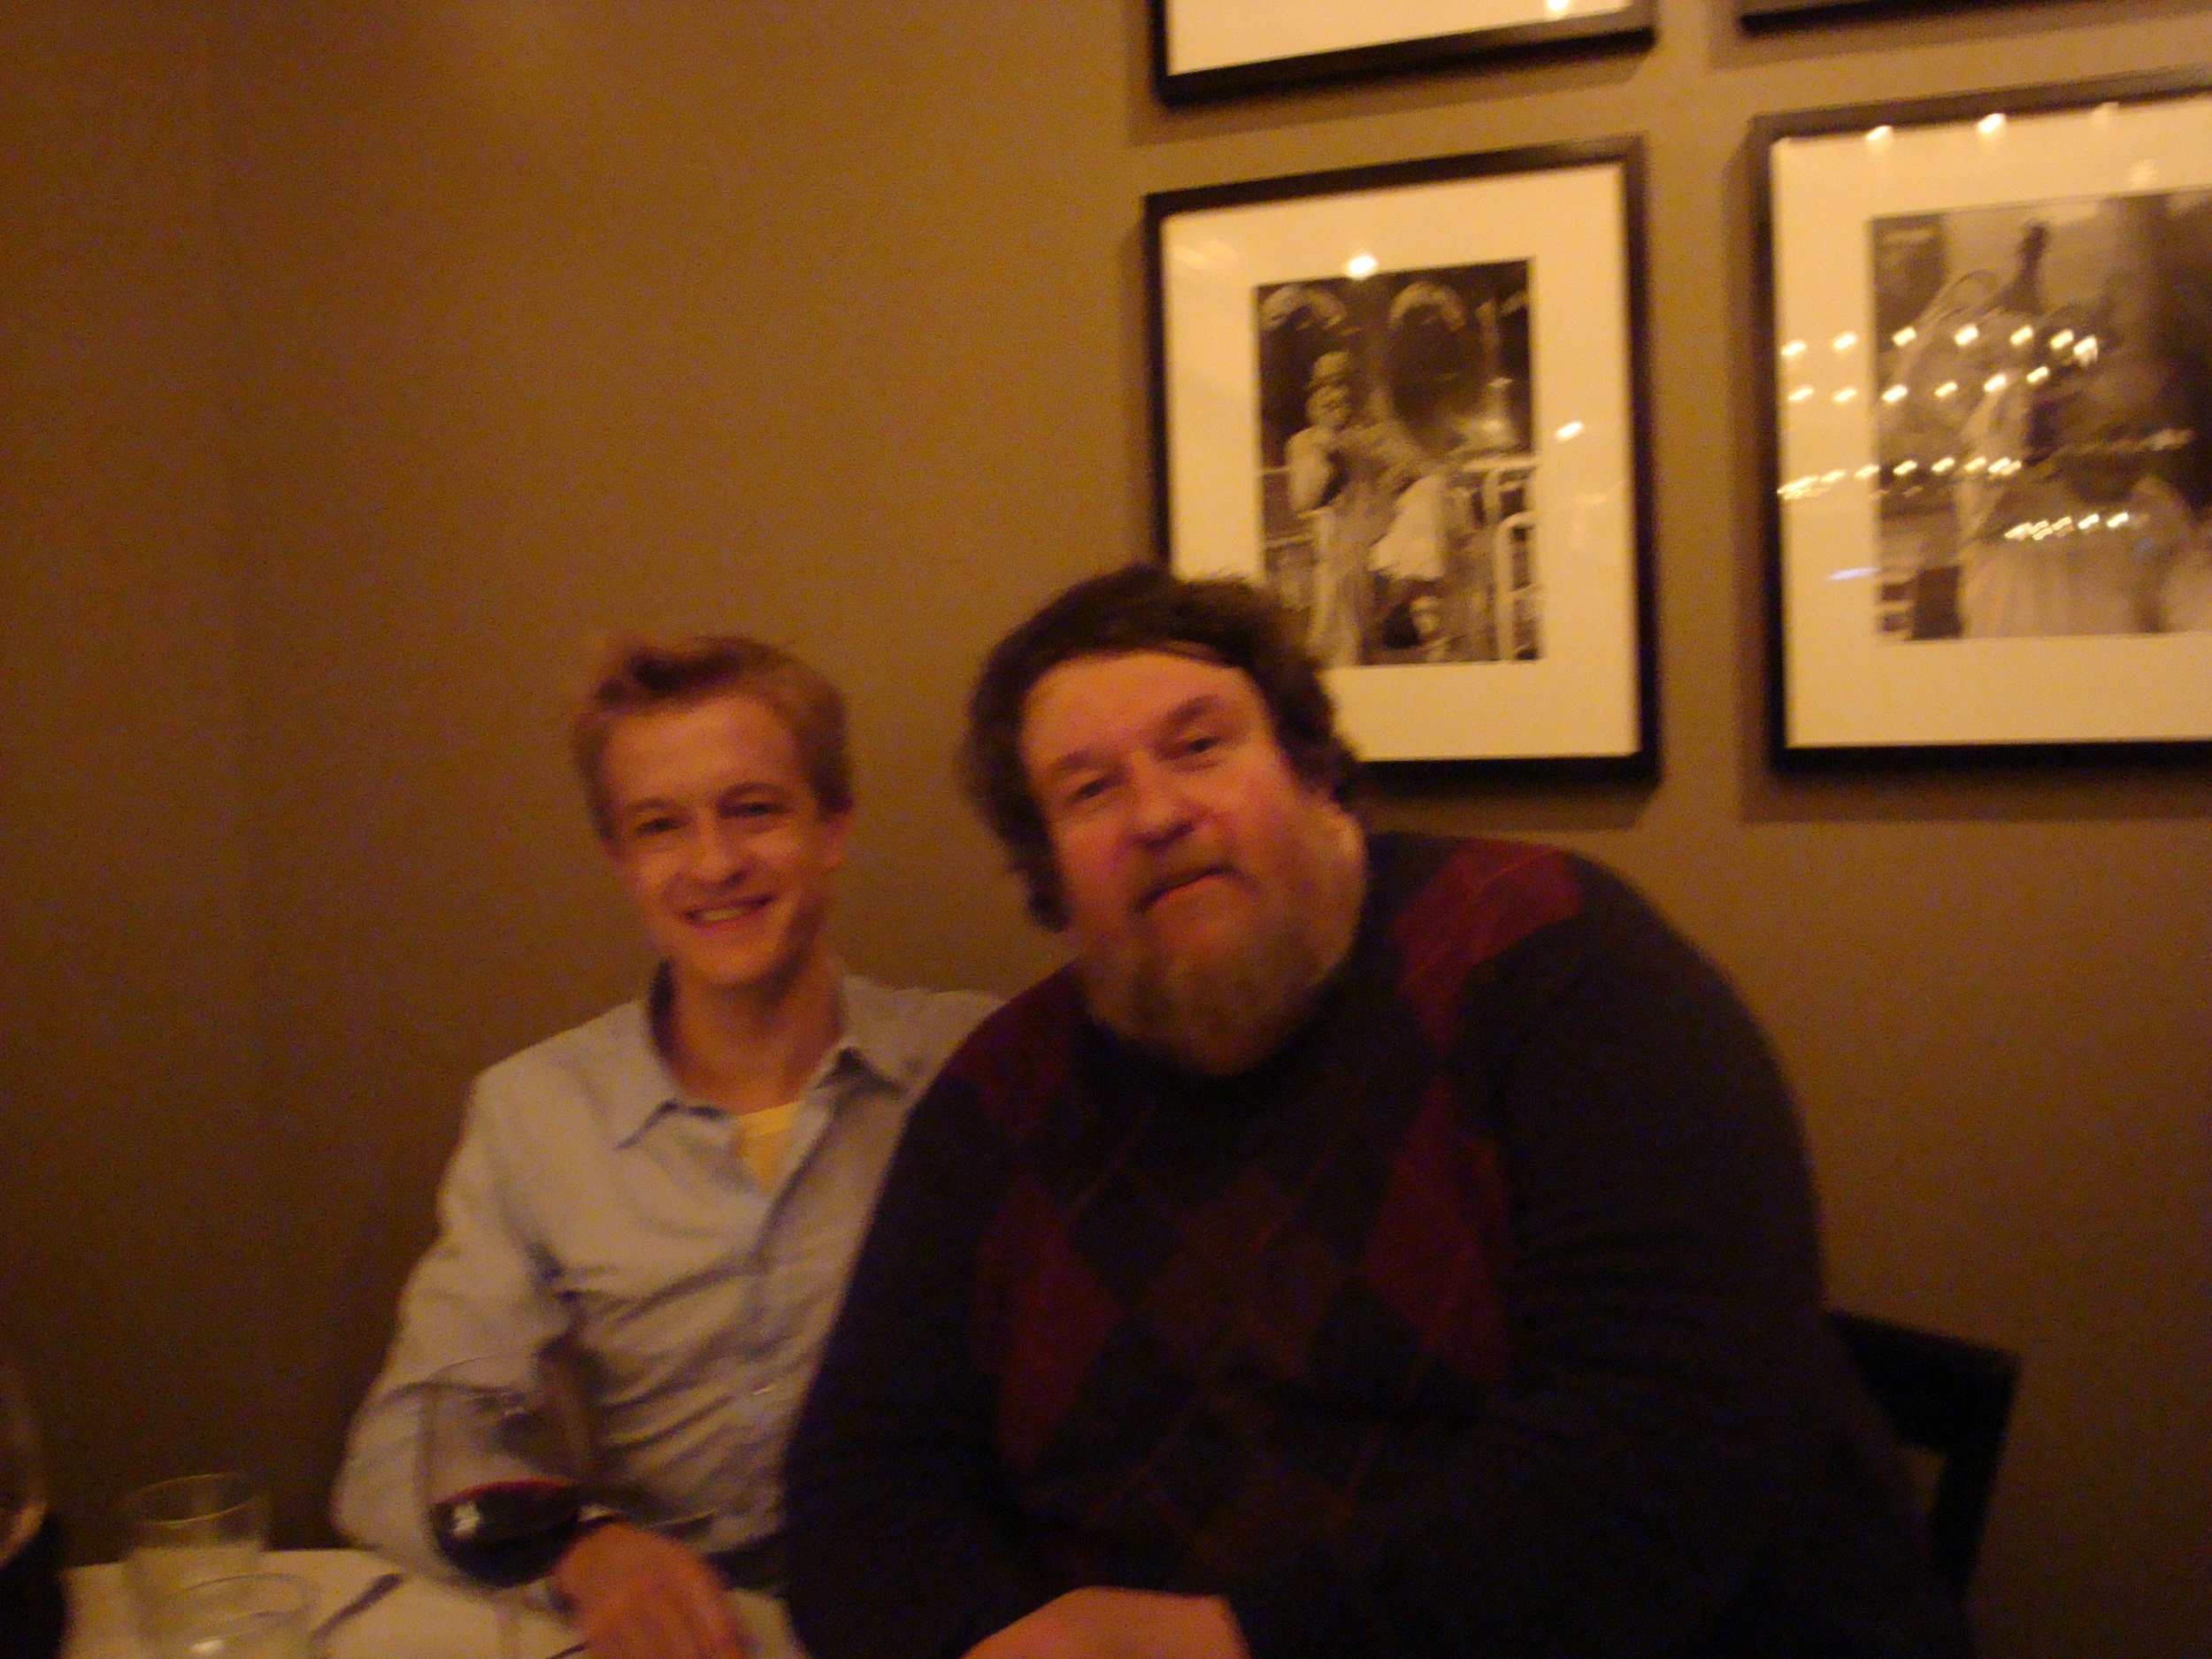 With the great composer and conductor Oliver Knussen, whose Songs without Voices  I conducted, and whom I assisted on his first(!) Beethoven 5.